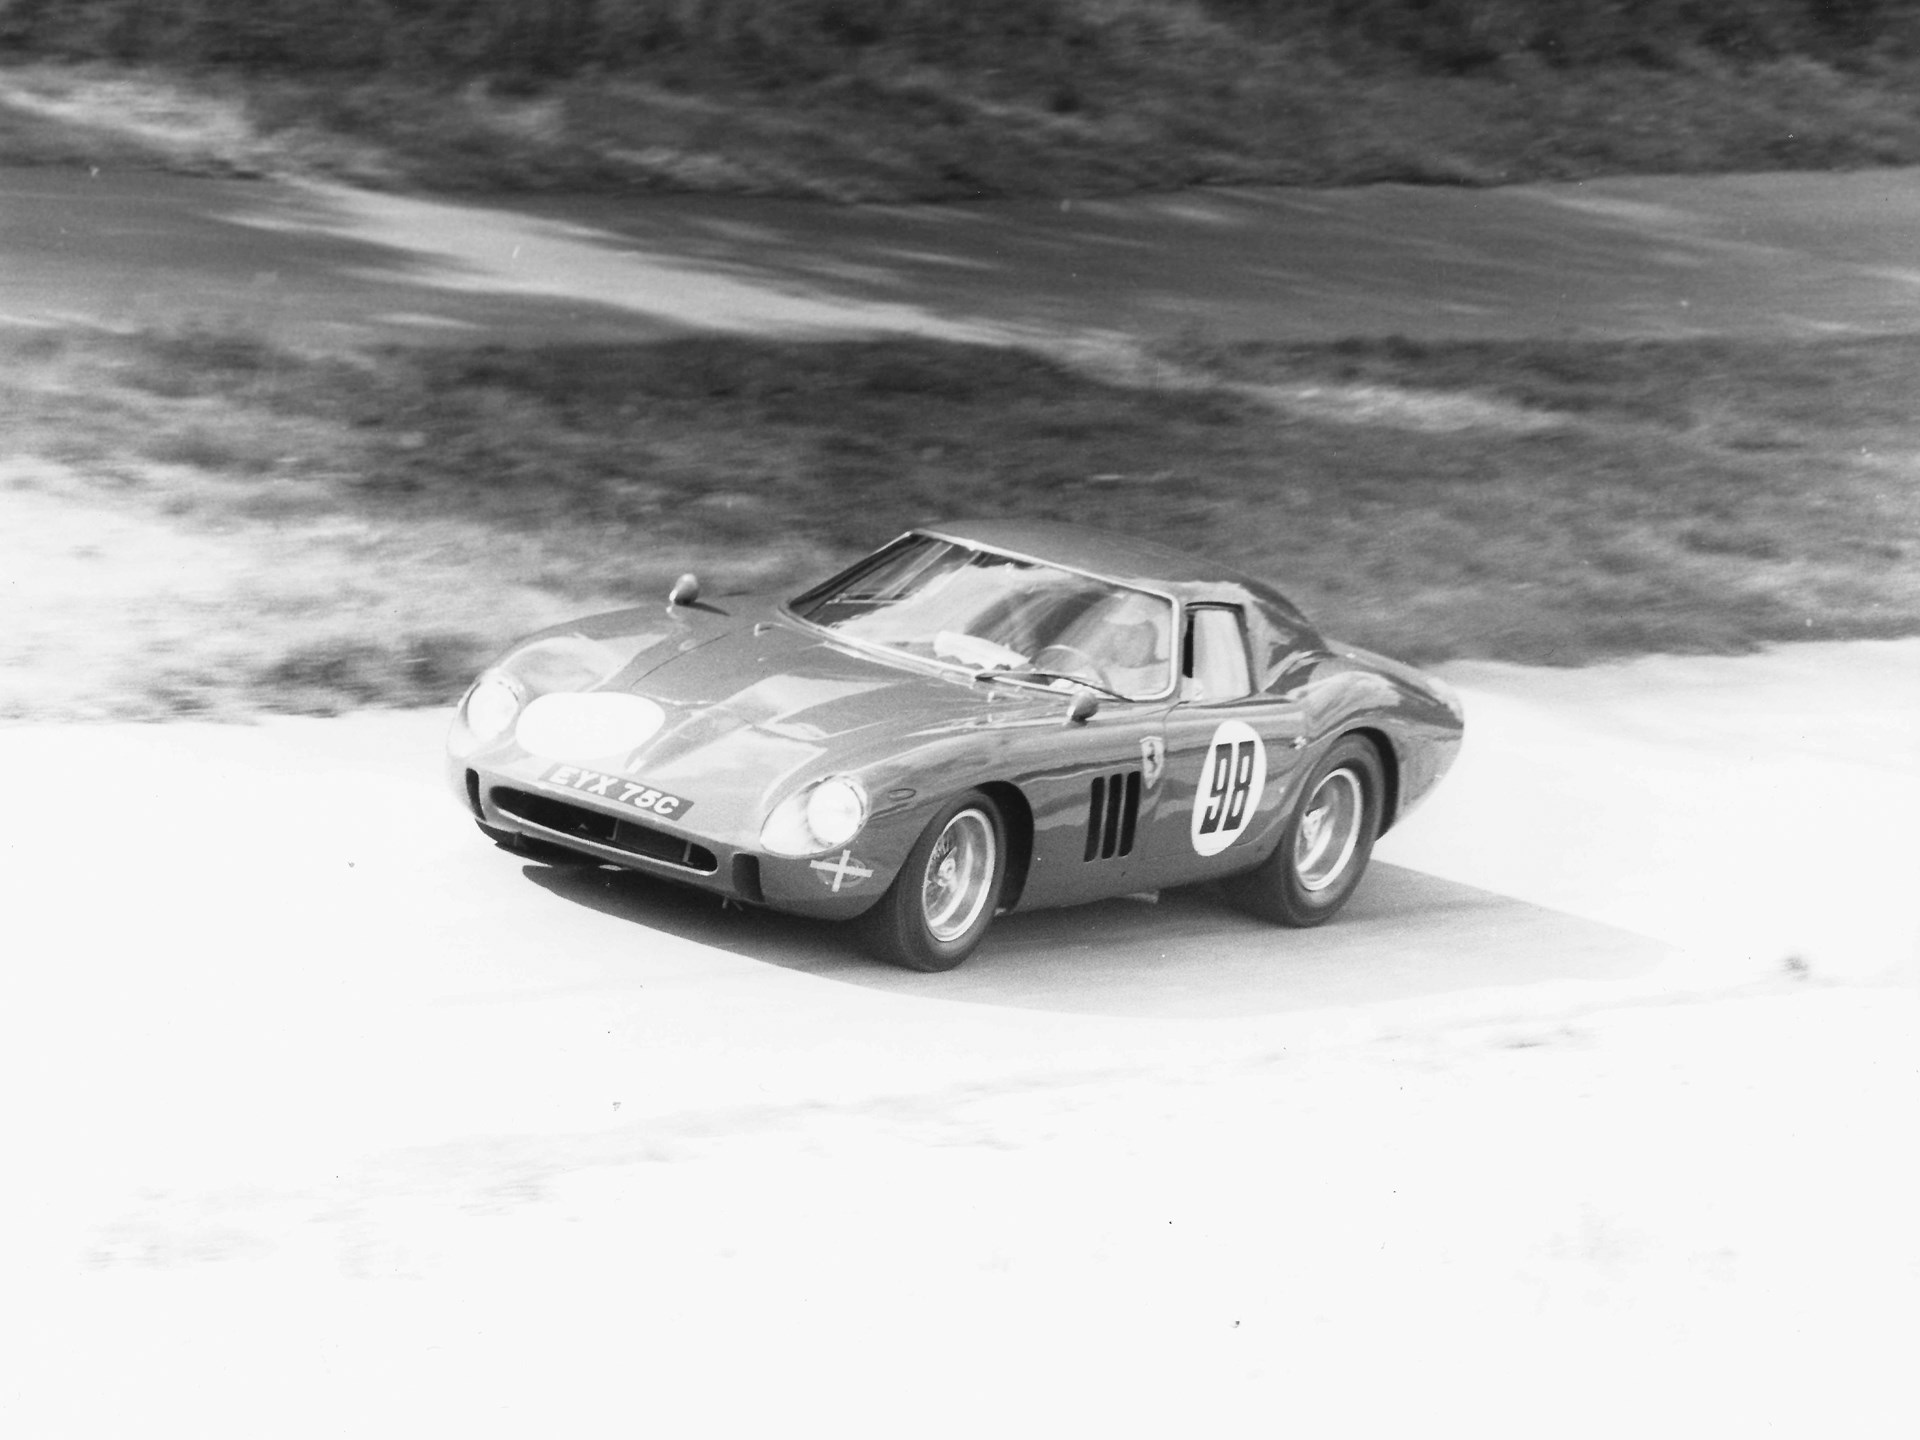 The 250 GTO at Prescott in 1967.